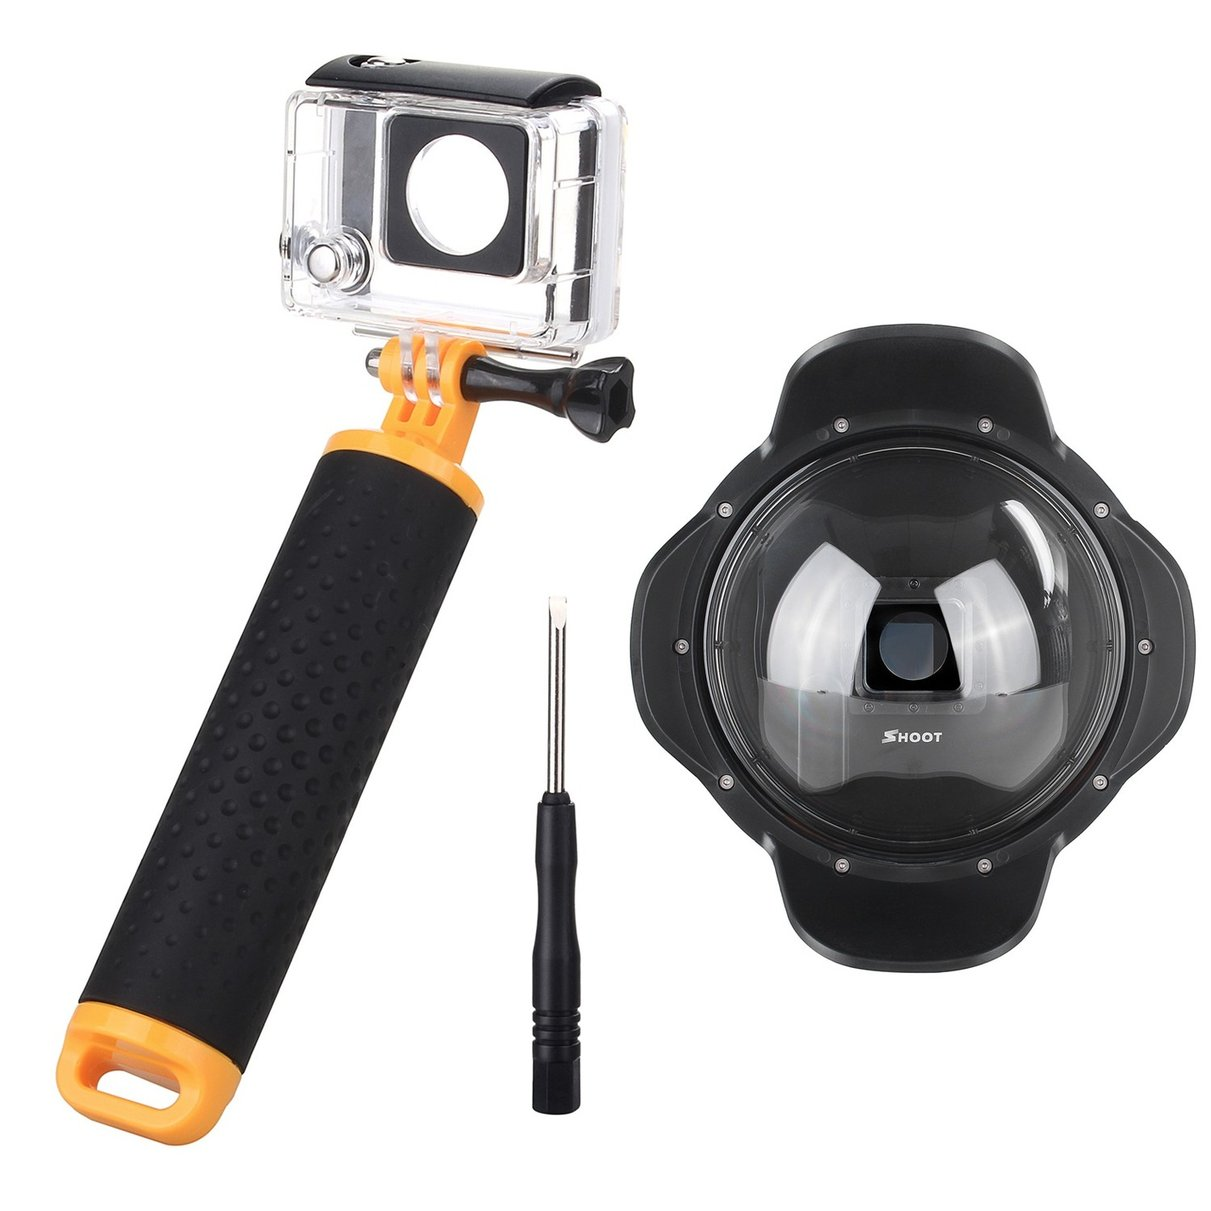 Shoot 6'' Diving Underwater Photography for Gopro Dome Port Cover with Floaty Handle with Lens Hood for GoPro Hero 3+/4 shoot 6 inch diving underwater dome lens dome port for gopro hero 4 3 black silver camera underwater photography